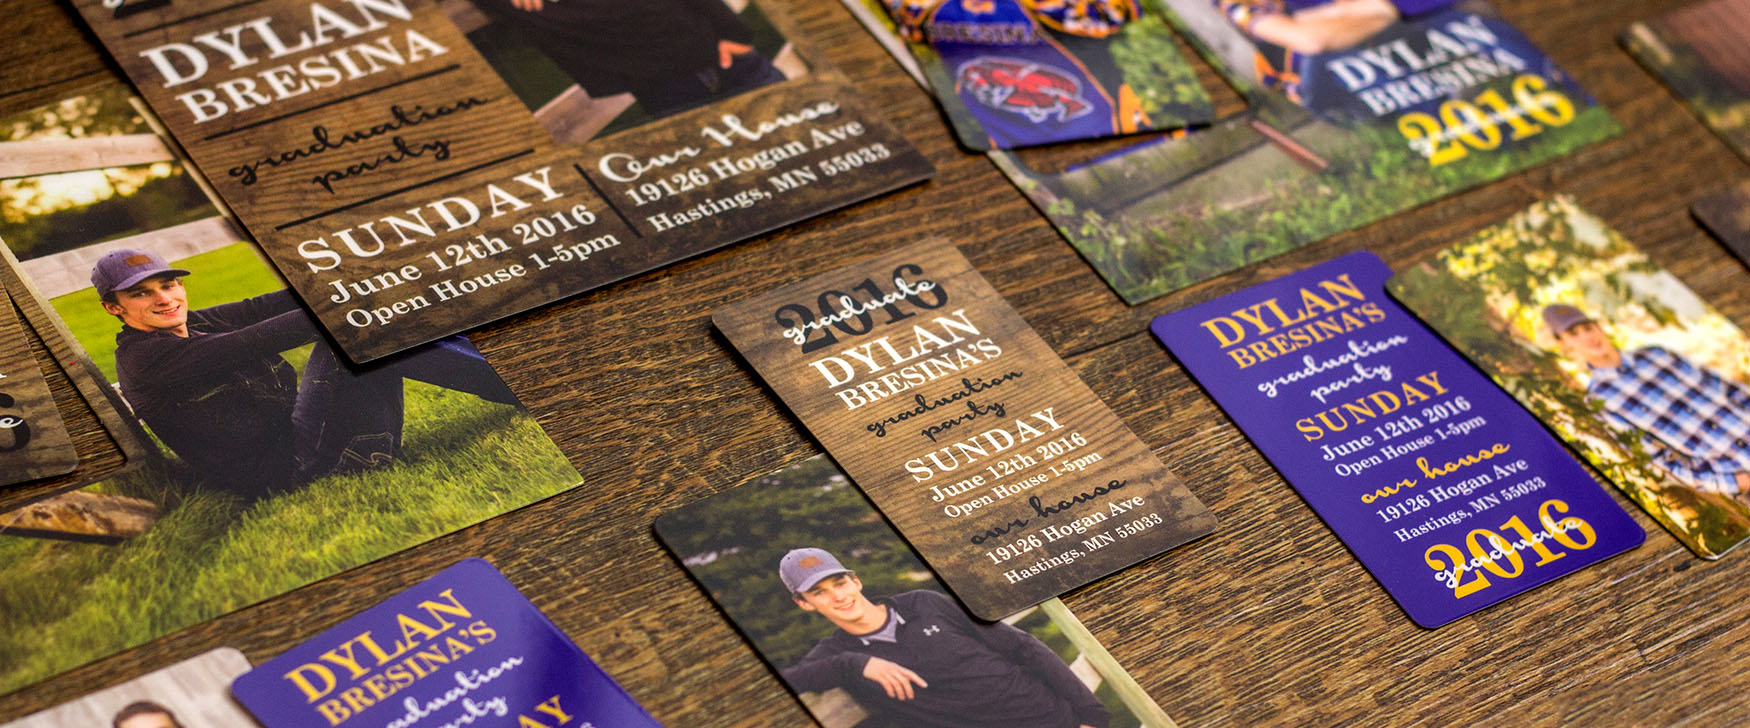 Graduation Invitations that can be customized to your Graduate!